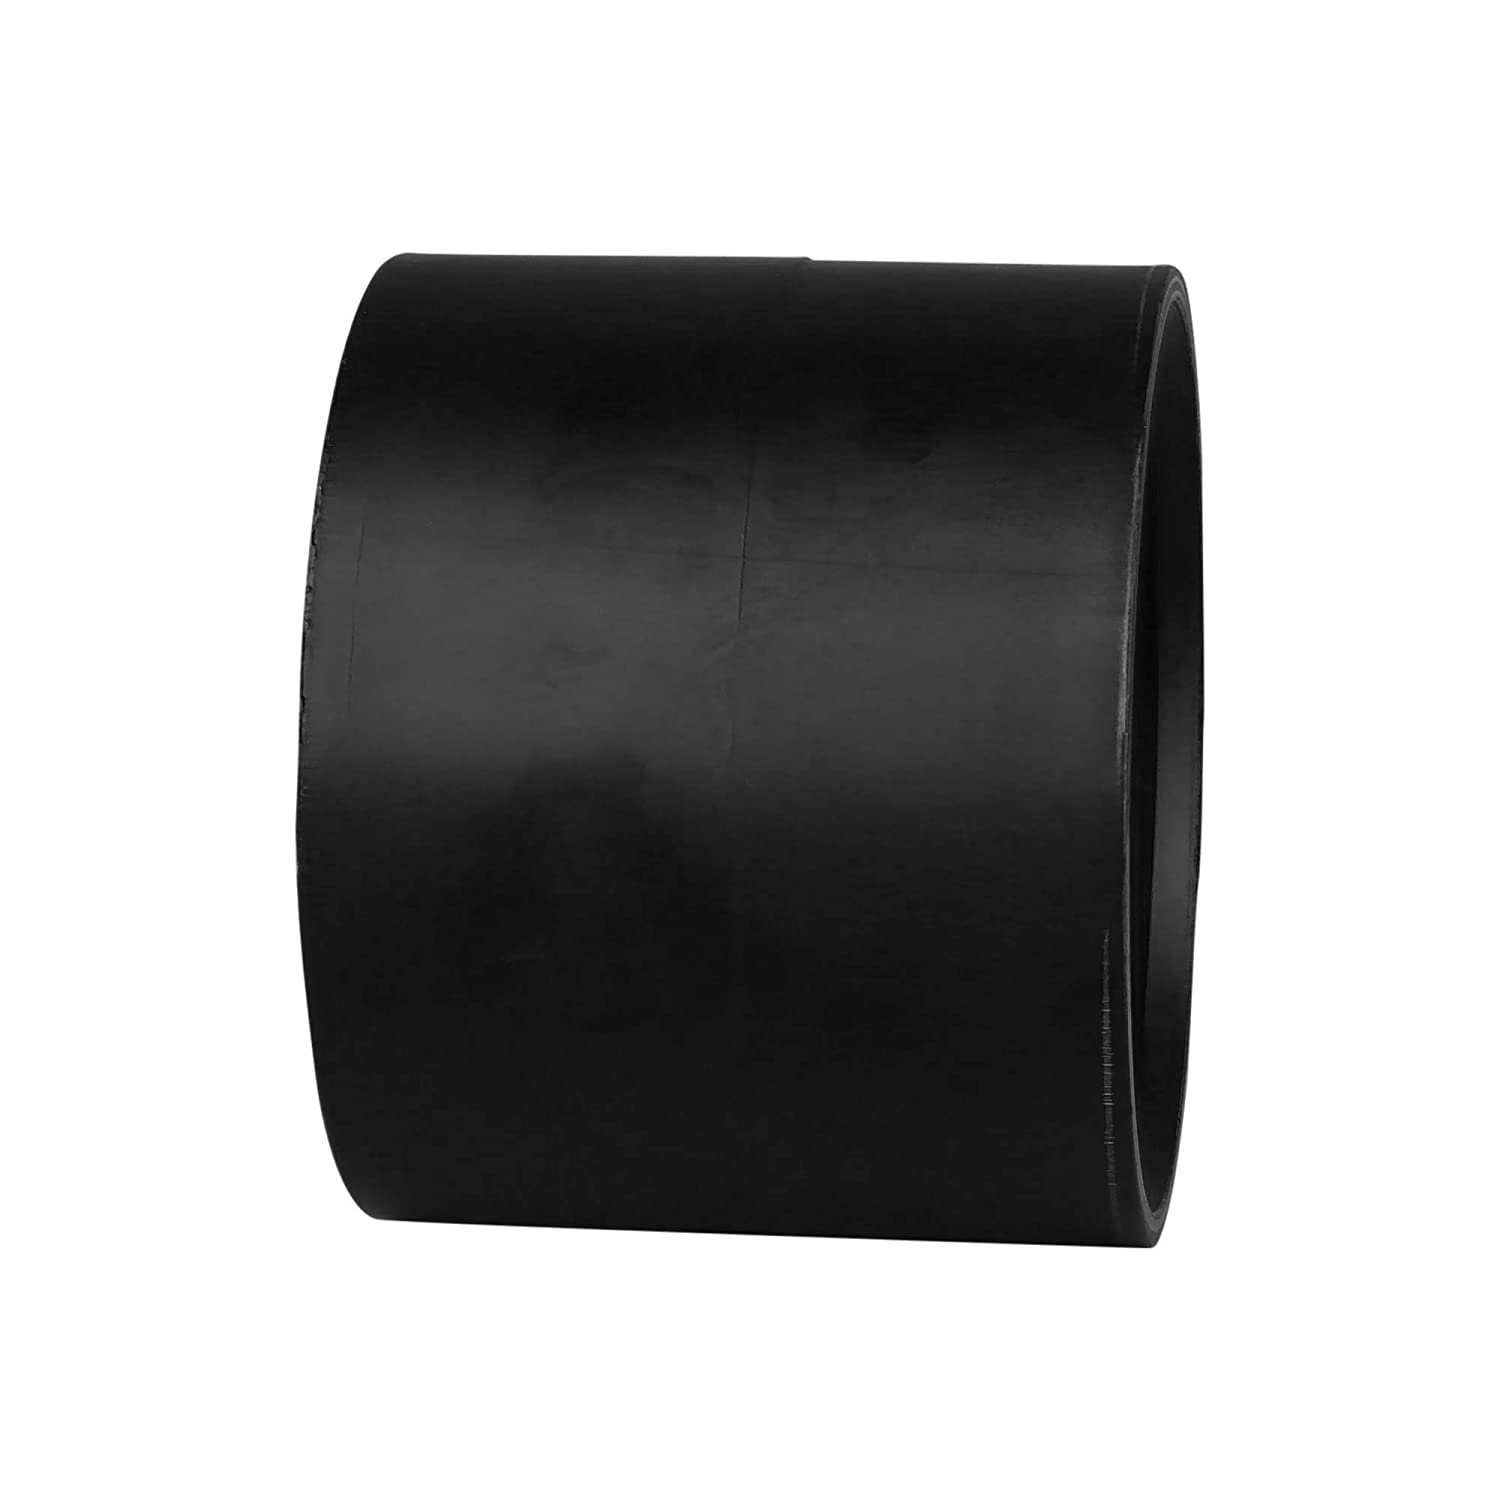 Single Unit Charlotte Pipe 4 DWV Coupling ABS DWV Schedule 40 Drain, Waste and Vent